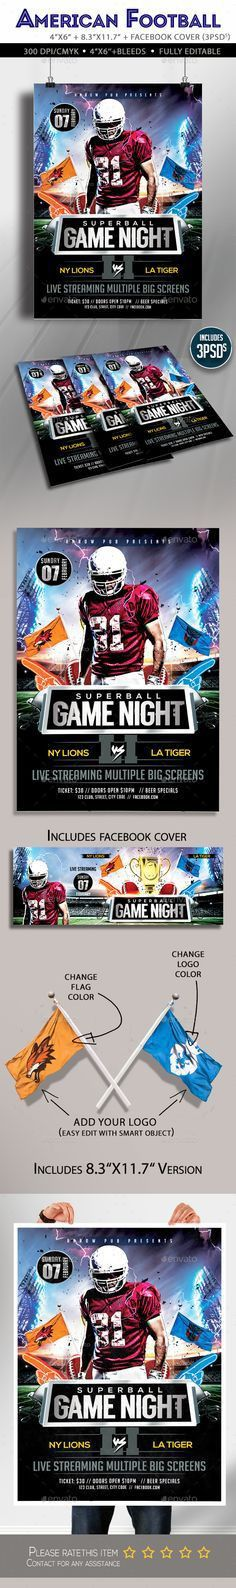 Sports Bar Flyer Template v2 | Sports bars, Flyer template and Bar